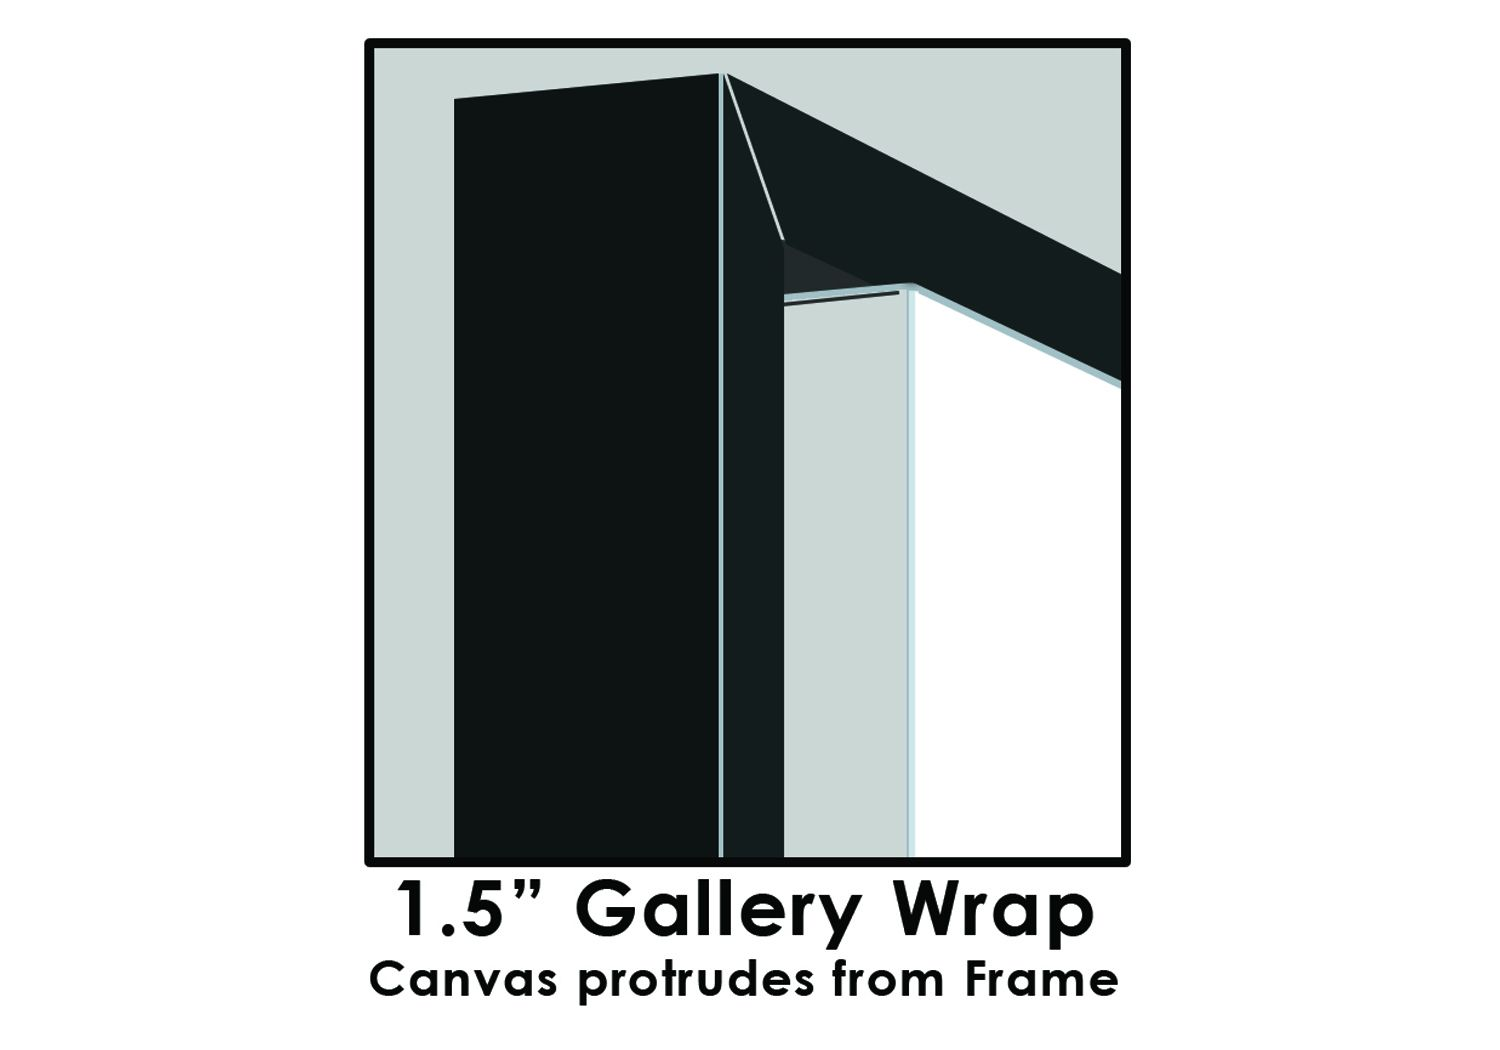 Floating Framed Canvas | Gallery Wrap